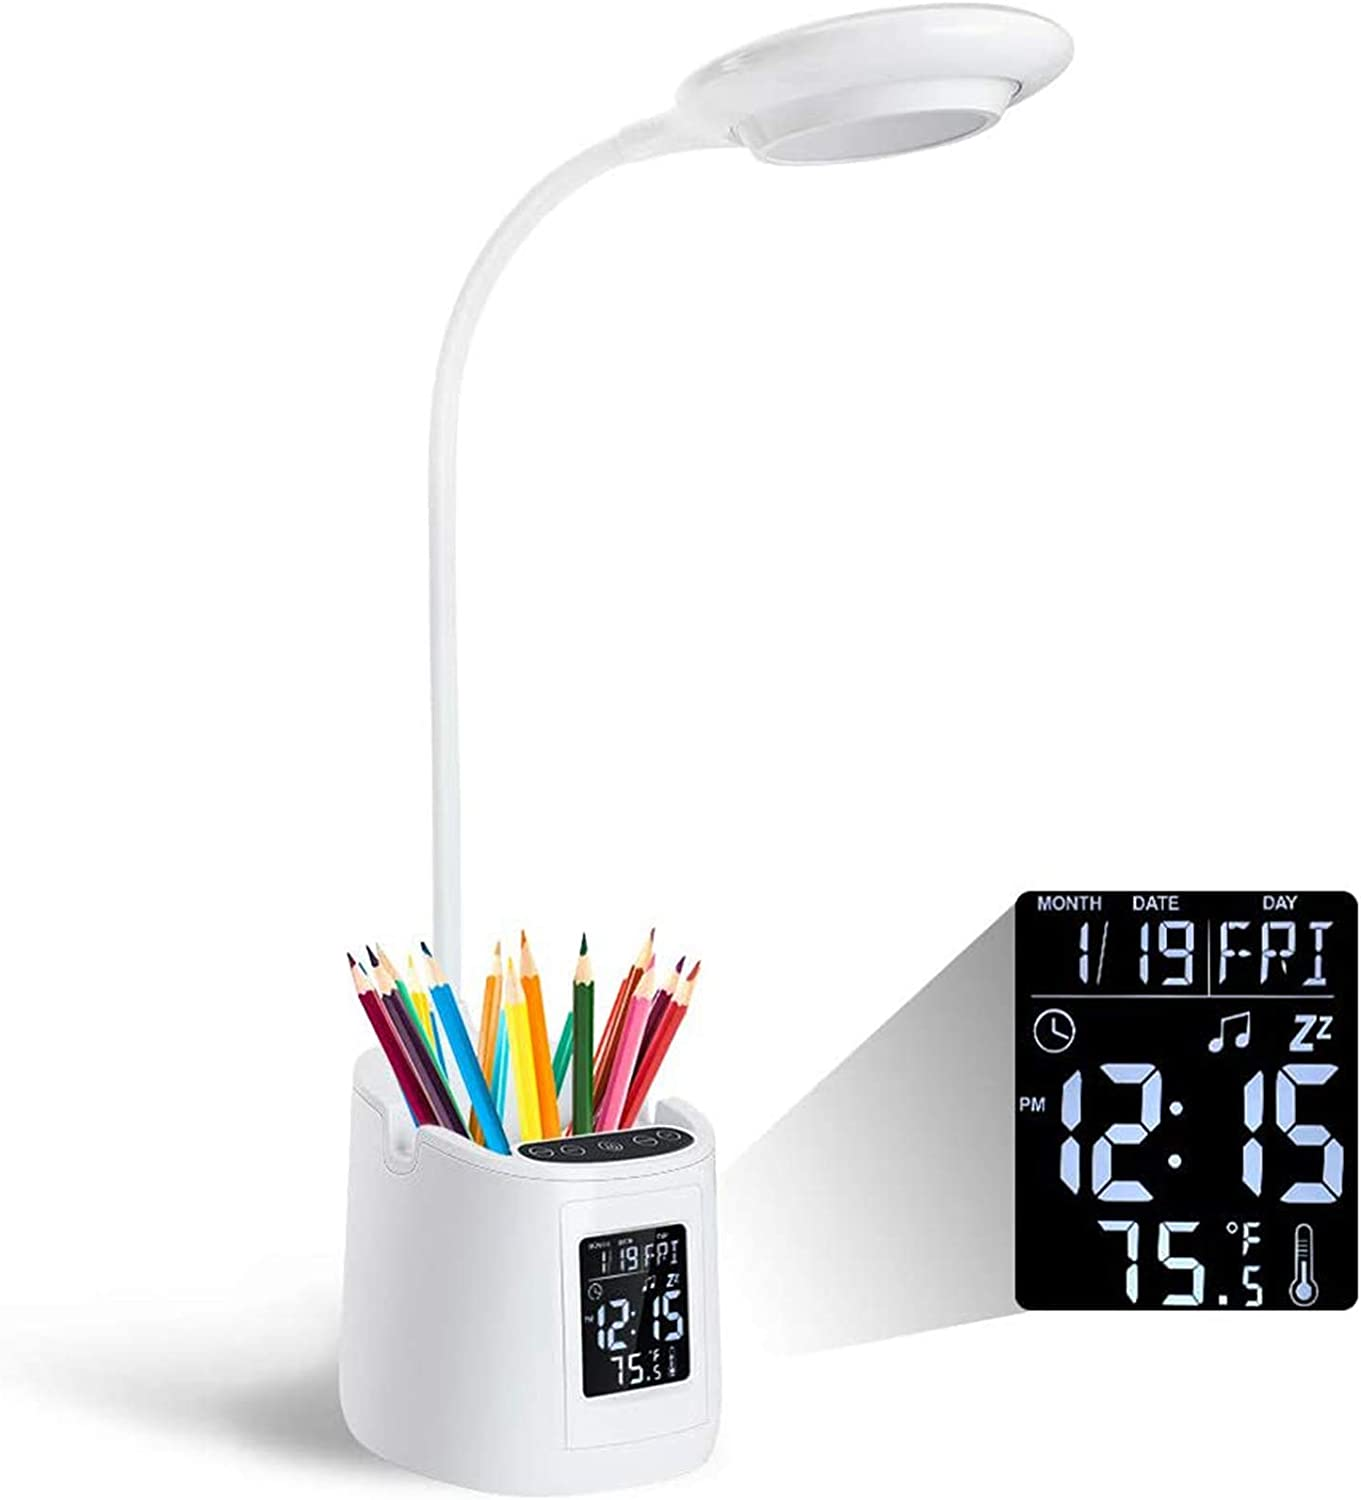 Desk Lamp for Kids, Home Office Desk Light with Clock Thermometer, LED Desk Lamp with Pencil Holder and Phone Bracket 3 Dimmable Brightness Touch Control Battery Powered Lamp for Boys Girls Learning